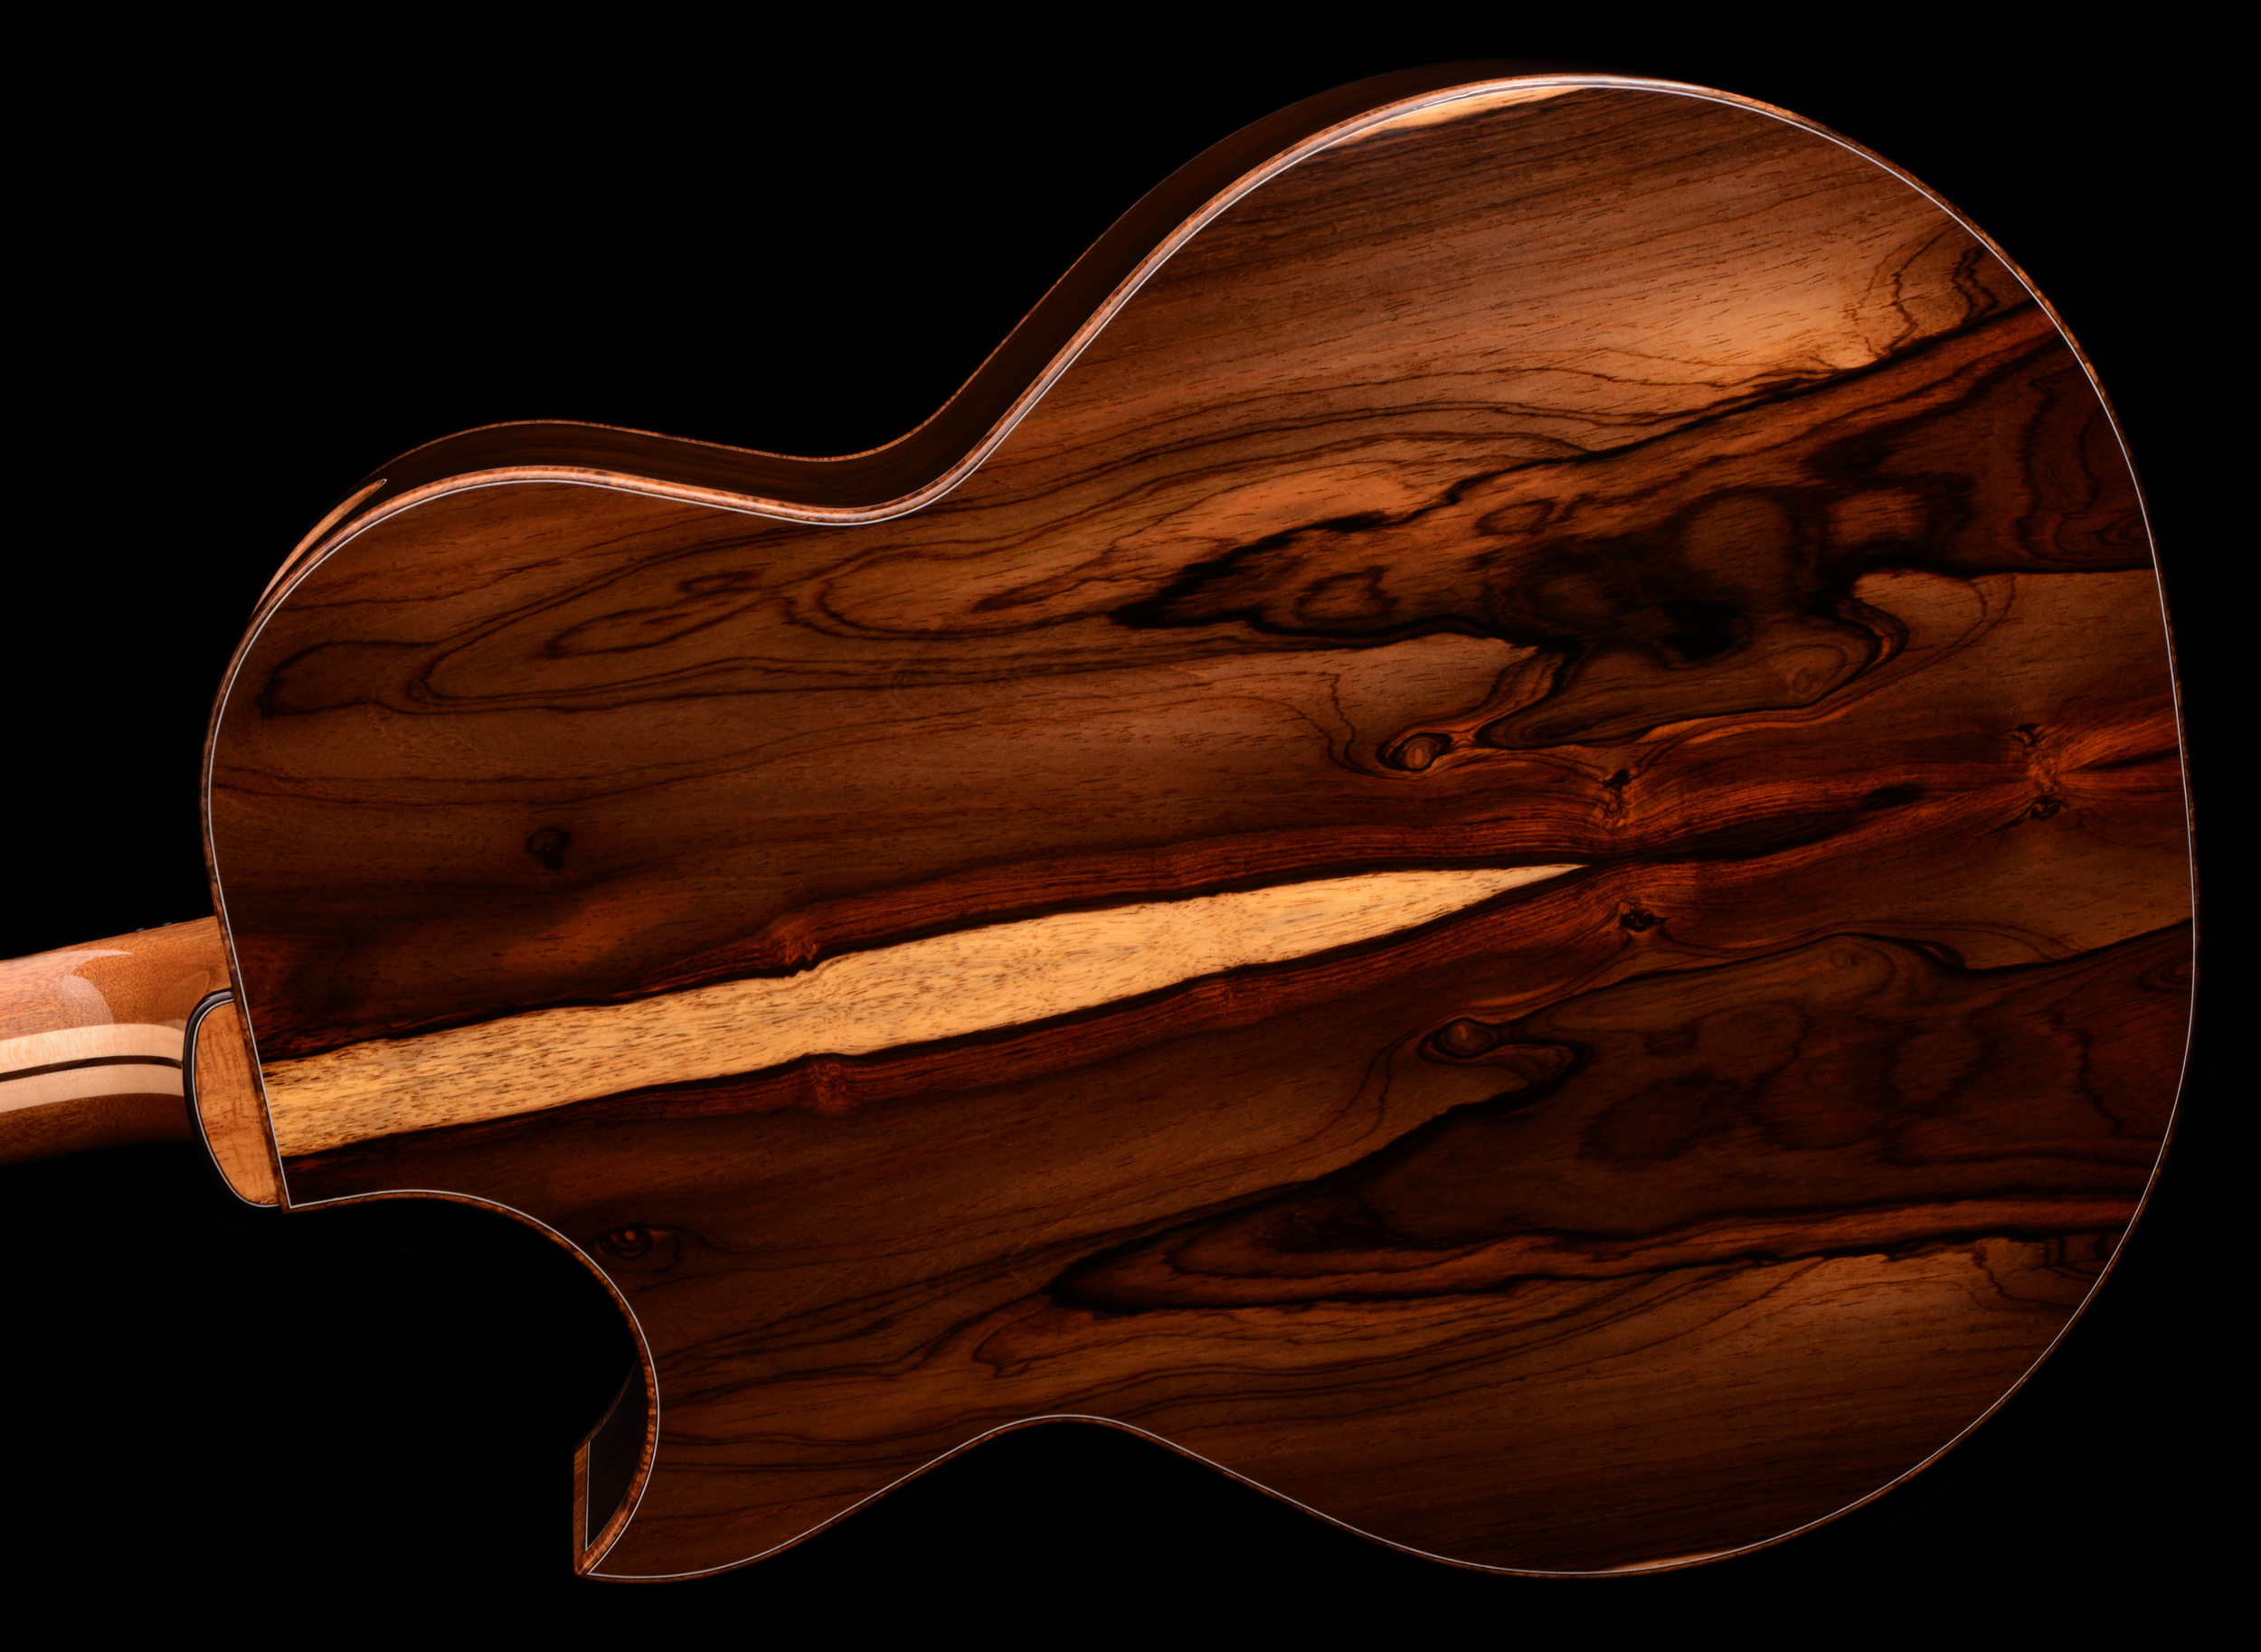 This Brazilian guitar is reflective of a Thomas Kinkade painting. It has areas with highlights that appeared to glow!